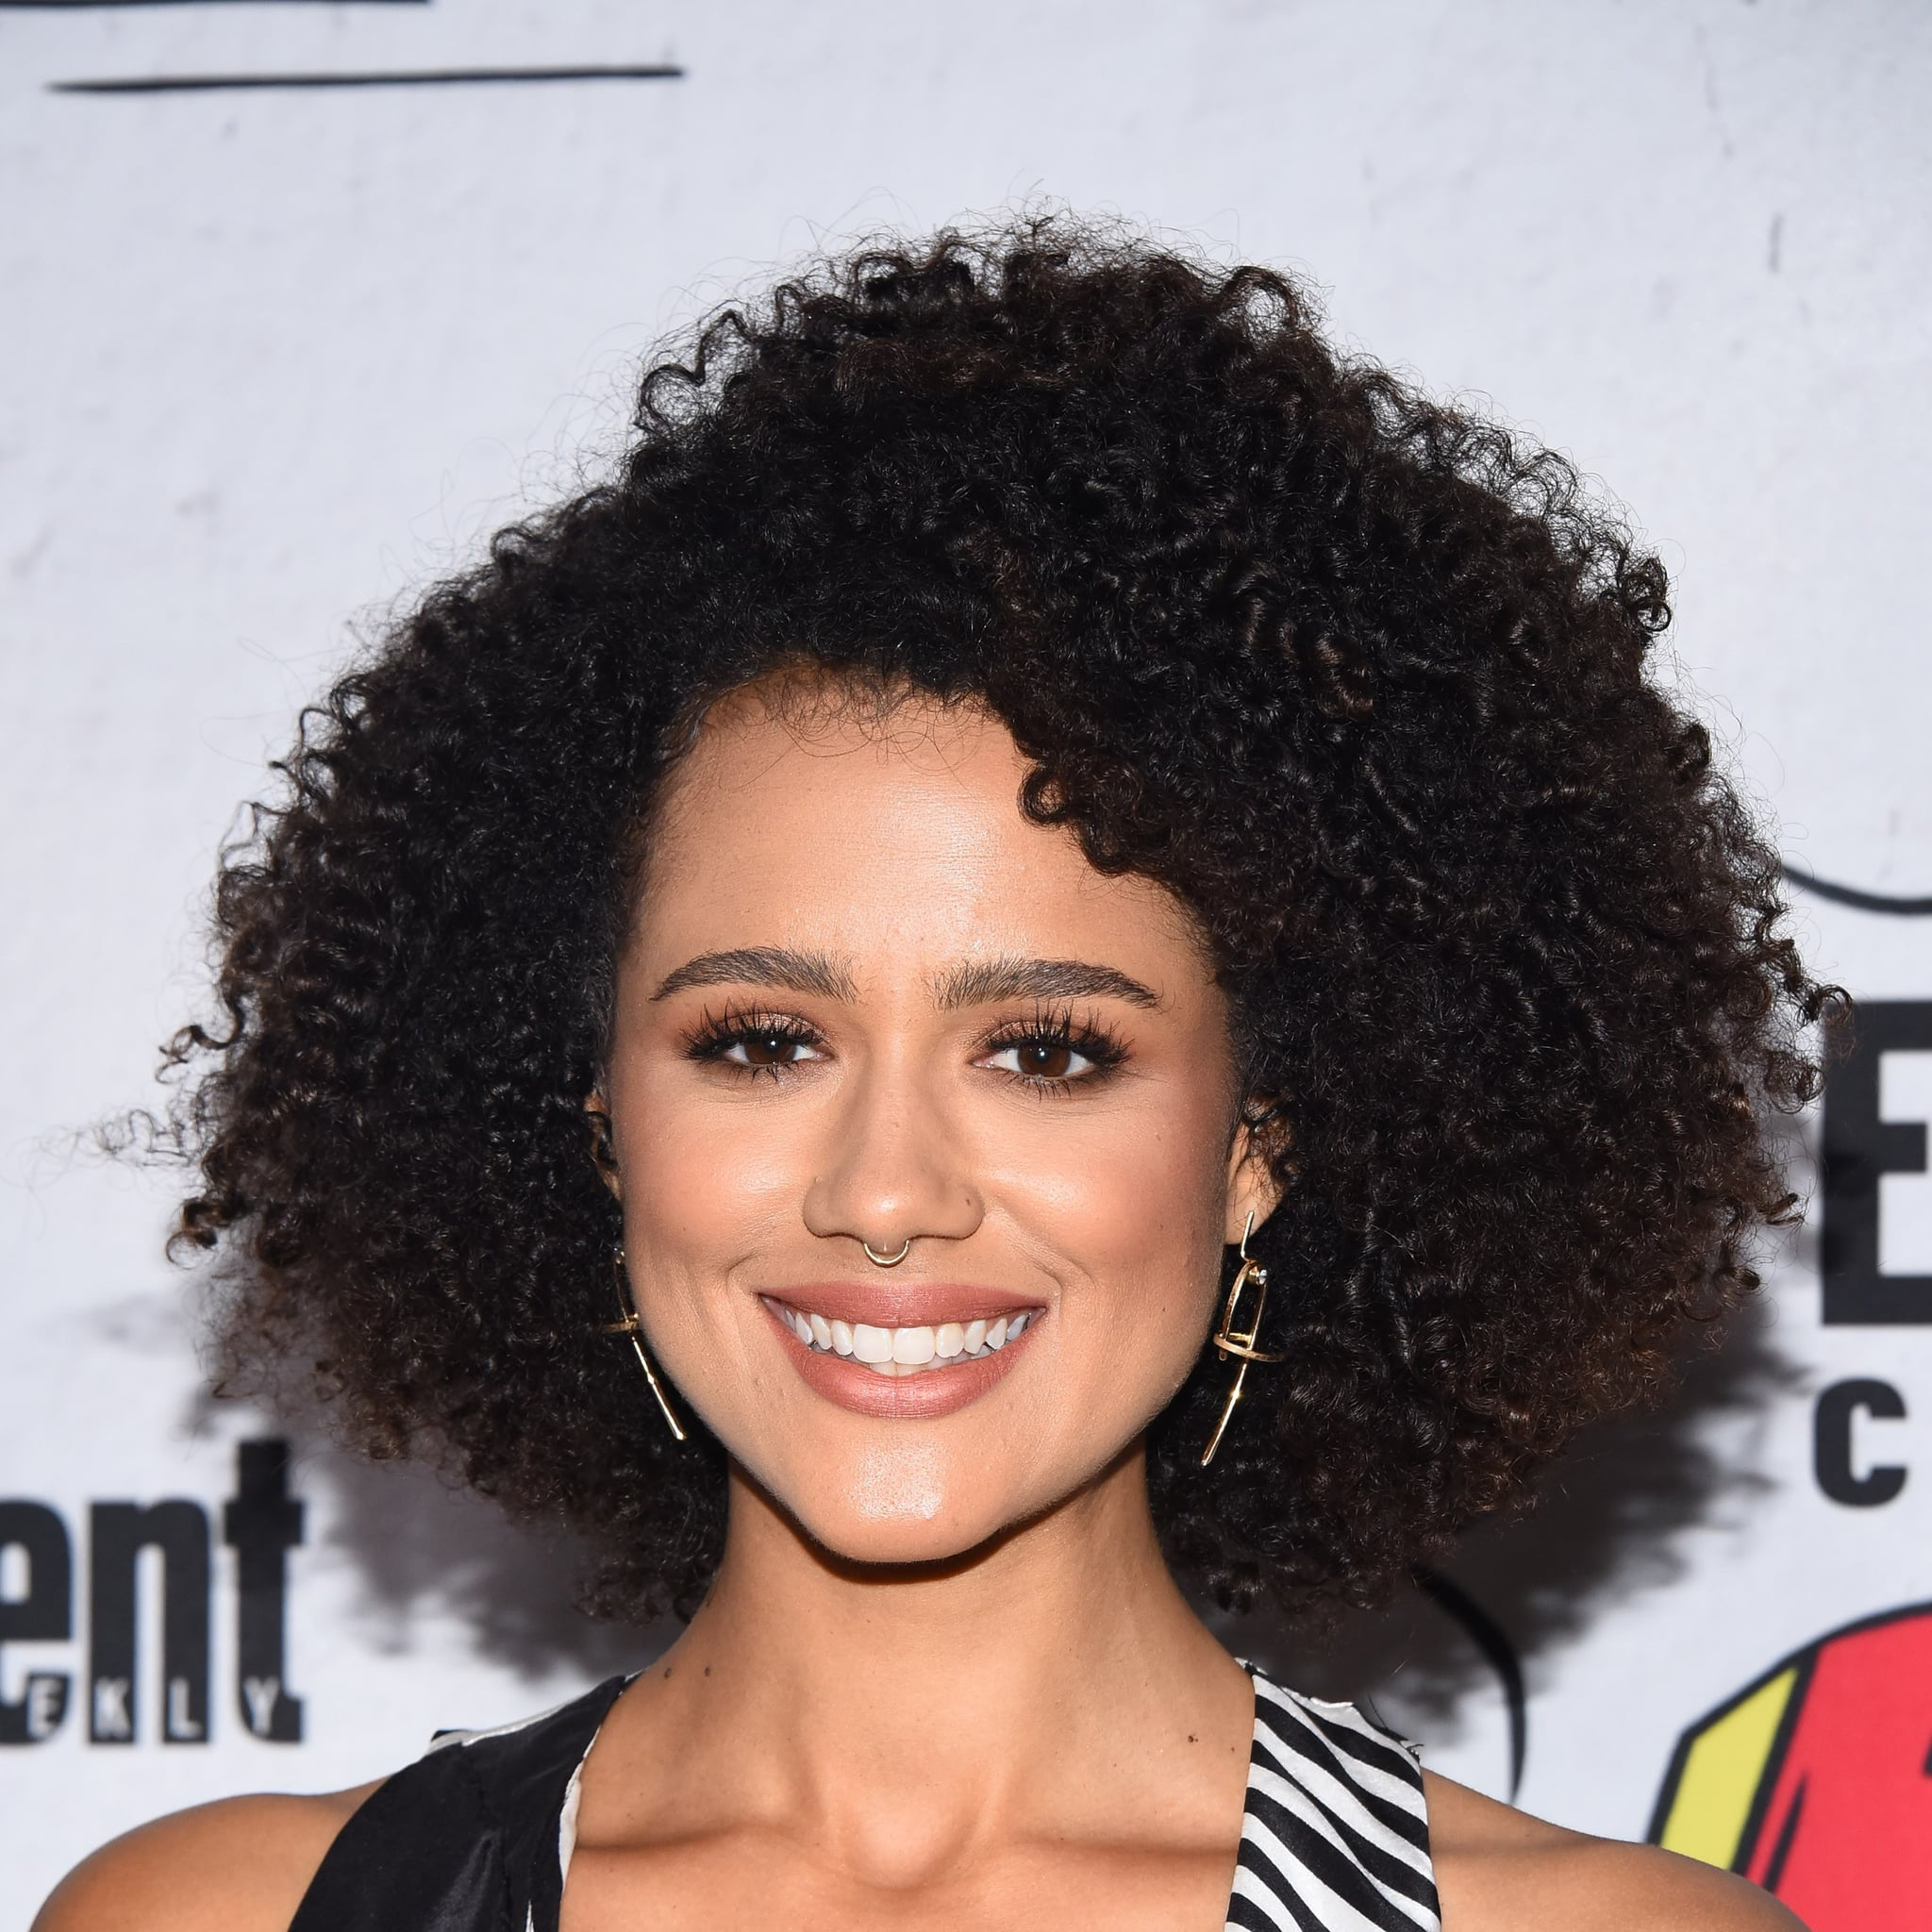 Selfie Nathalie Emmanuel naked (53 photo), Tits, Hot, Instagram, bra 2019